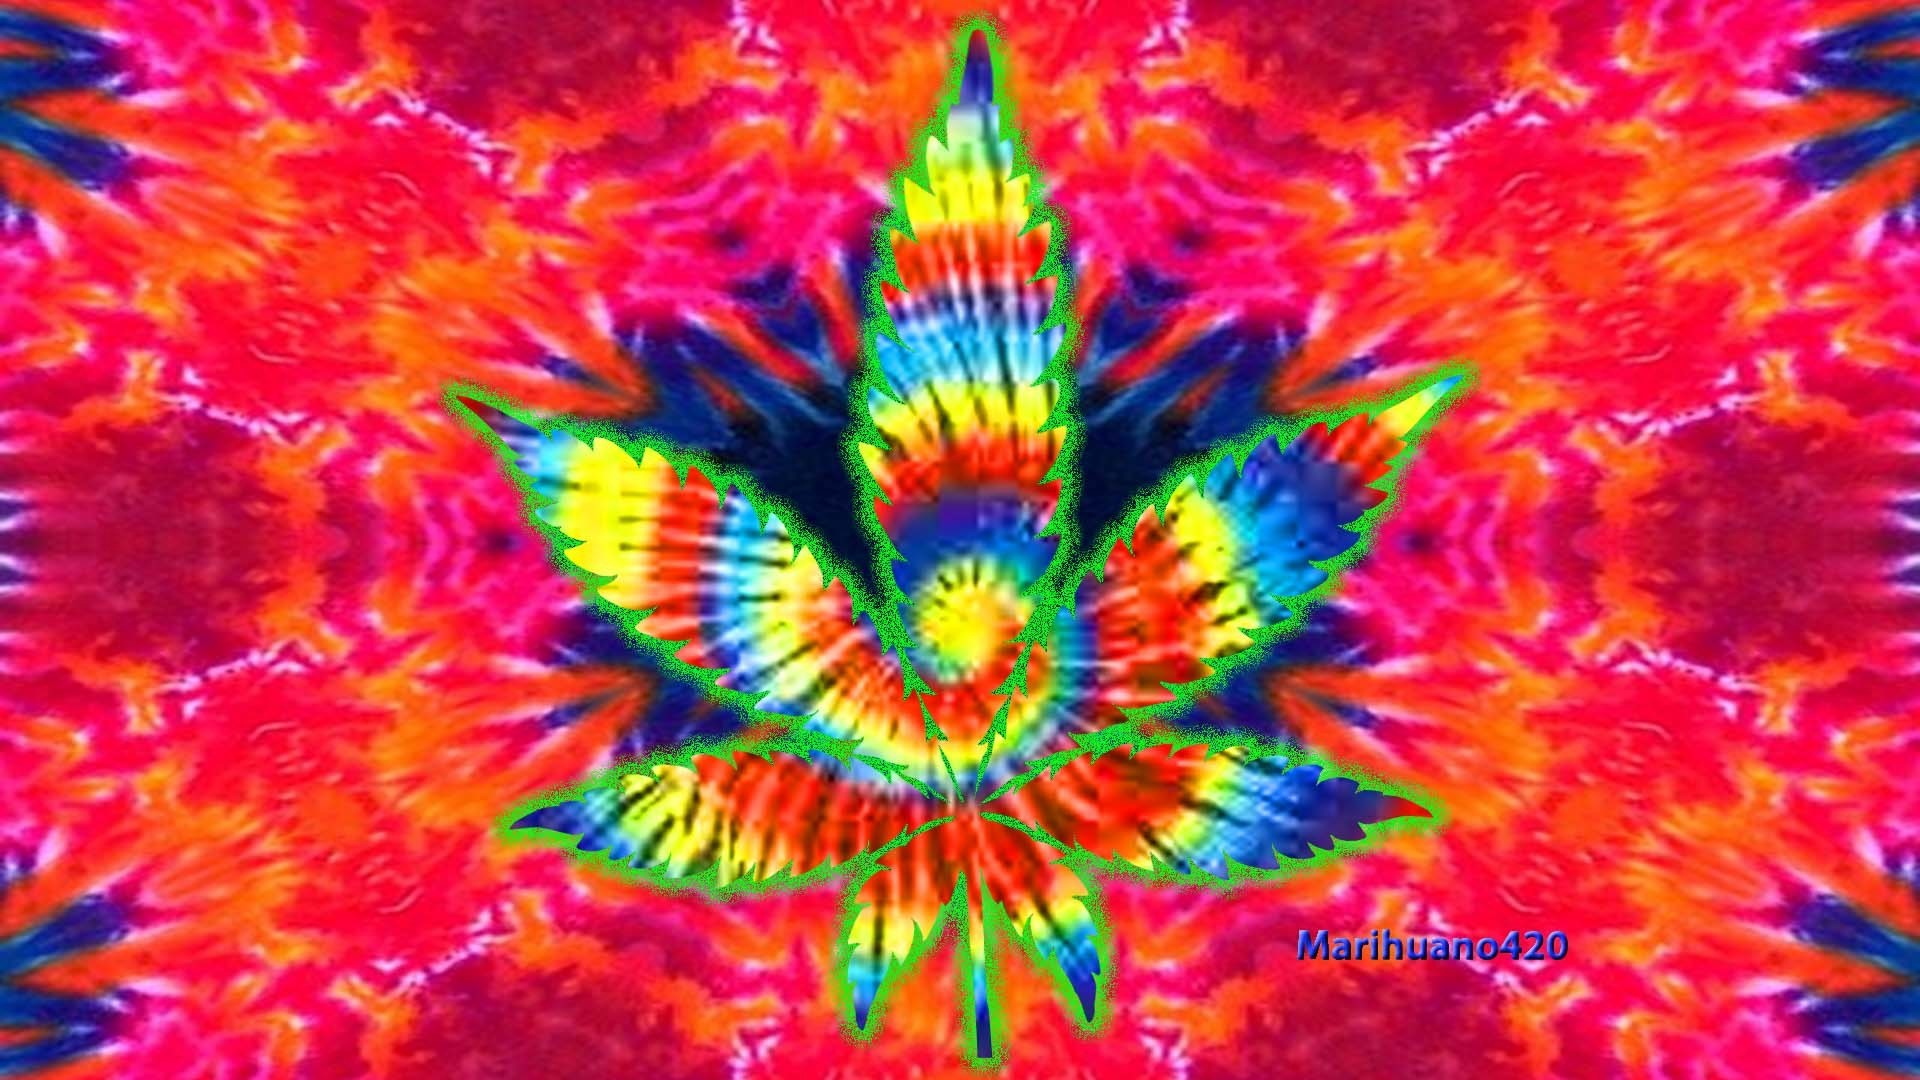 Hippie Wallpapers For Desktop 51 Images